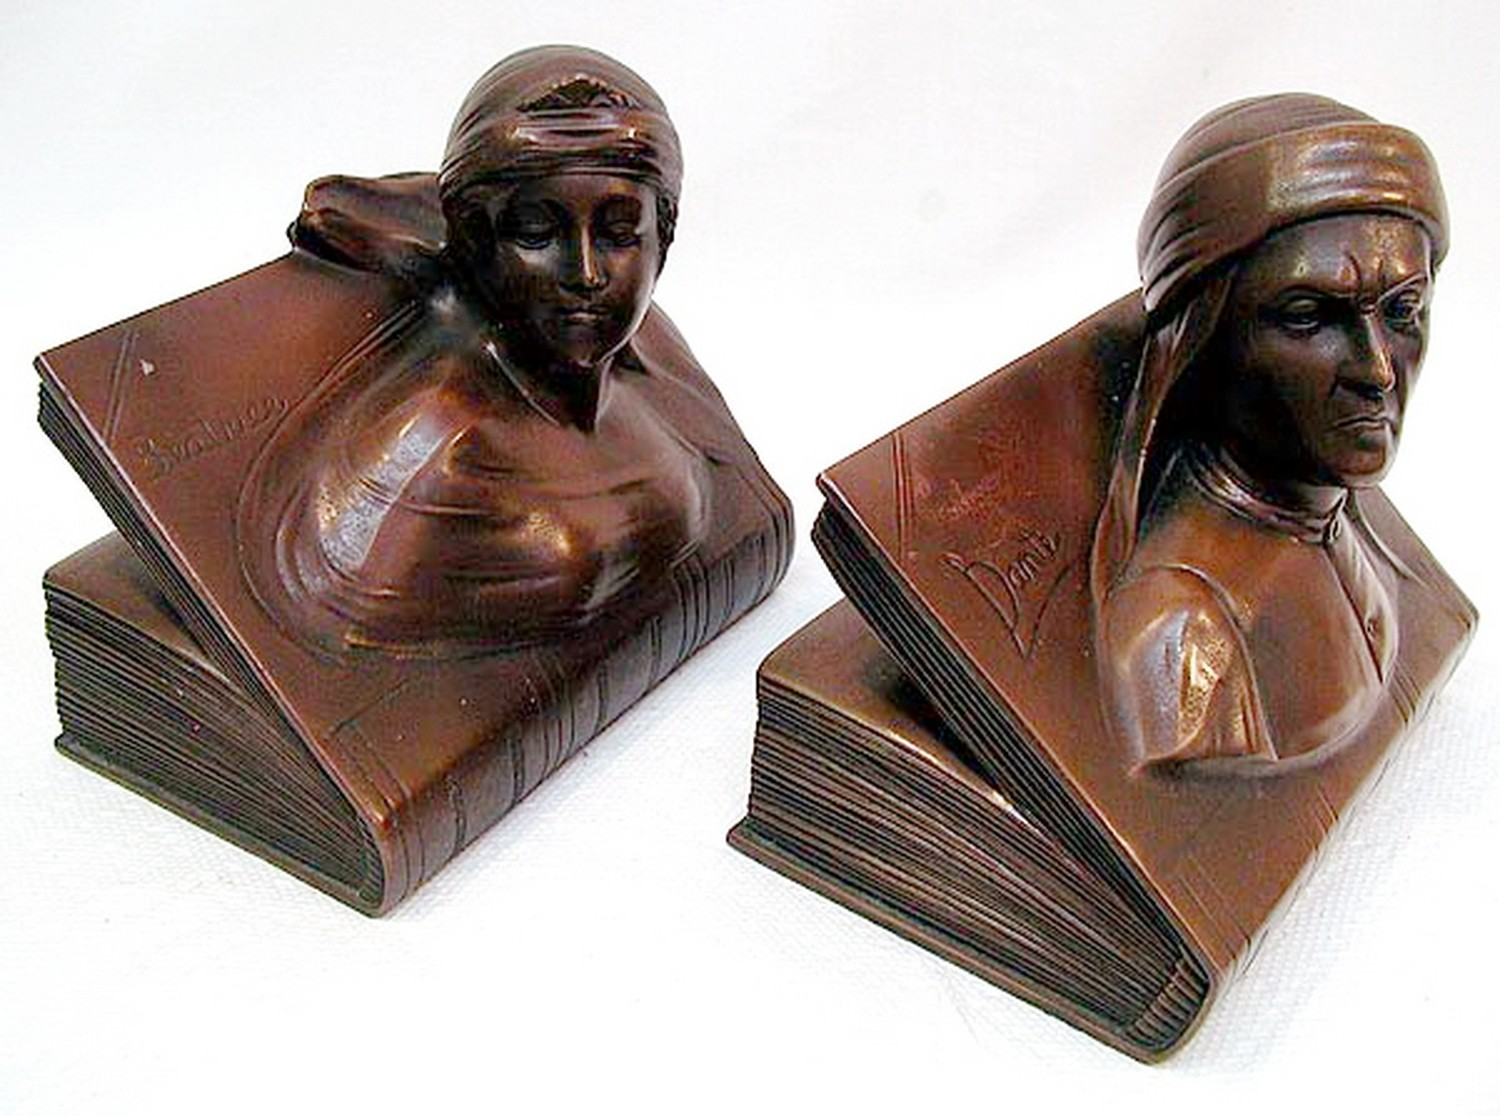 1926 Dante and Beatrice Art Deco Bookends by Jennings Bros